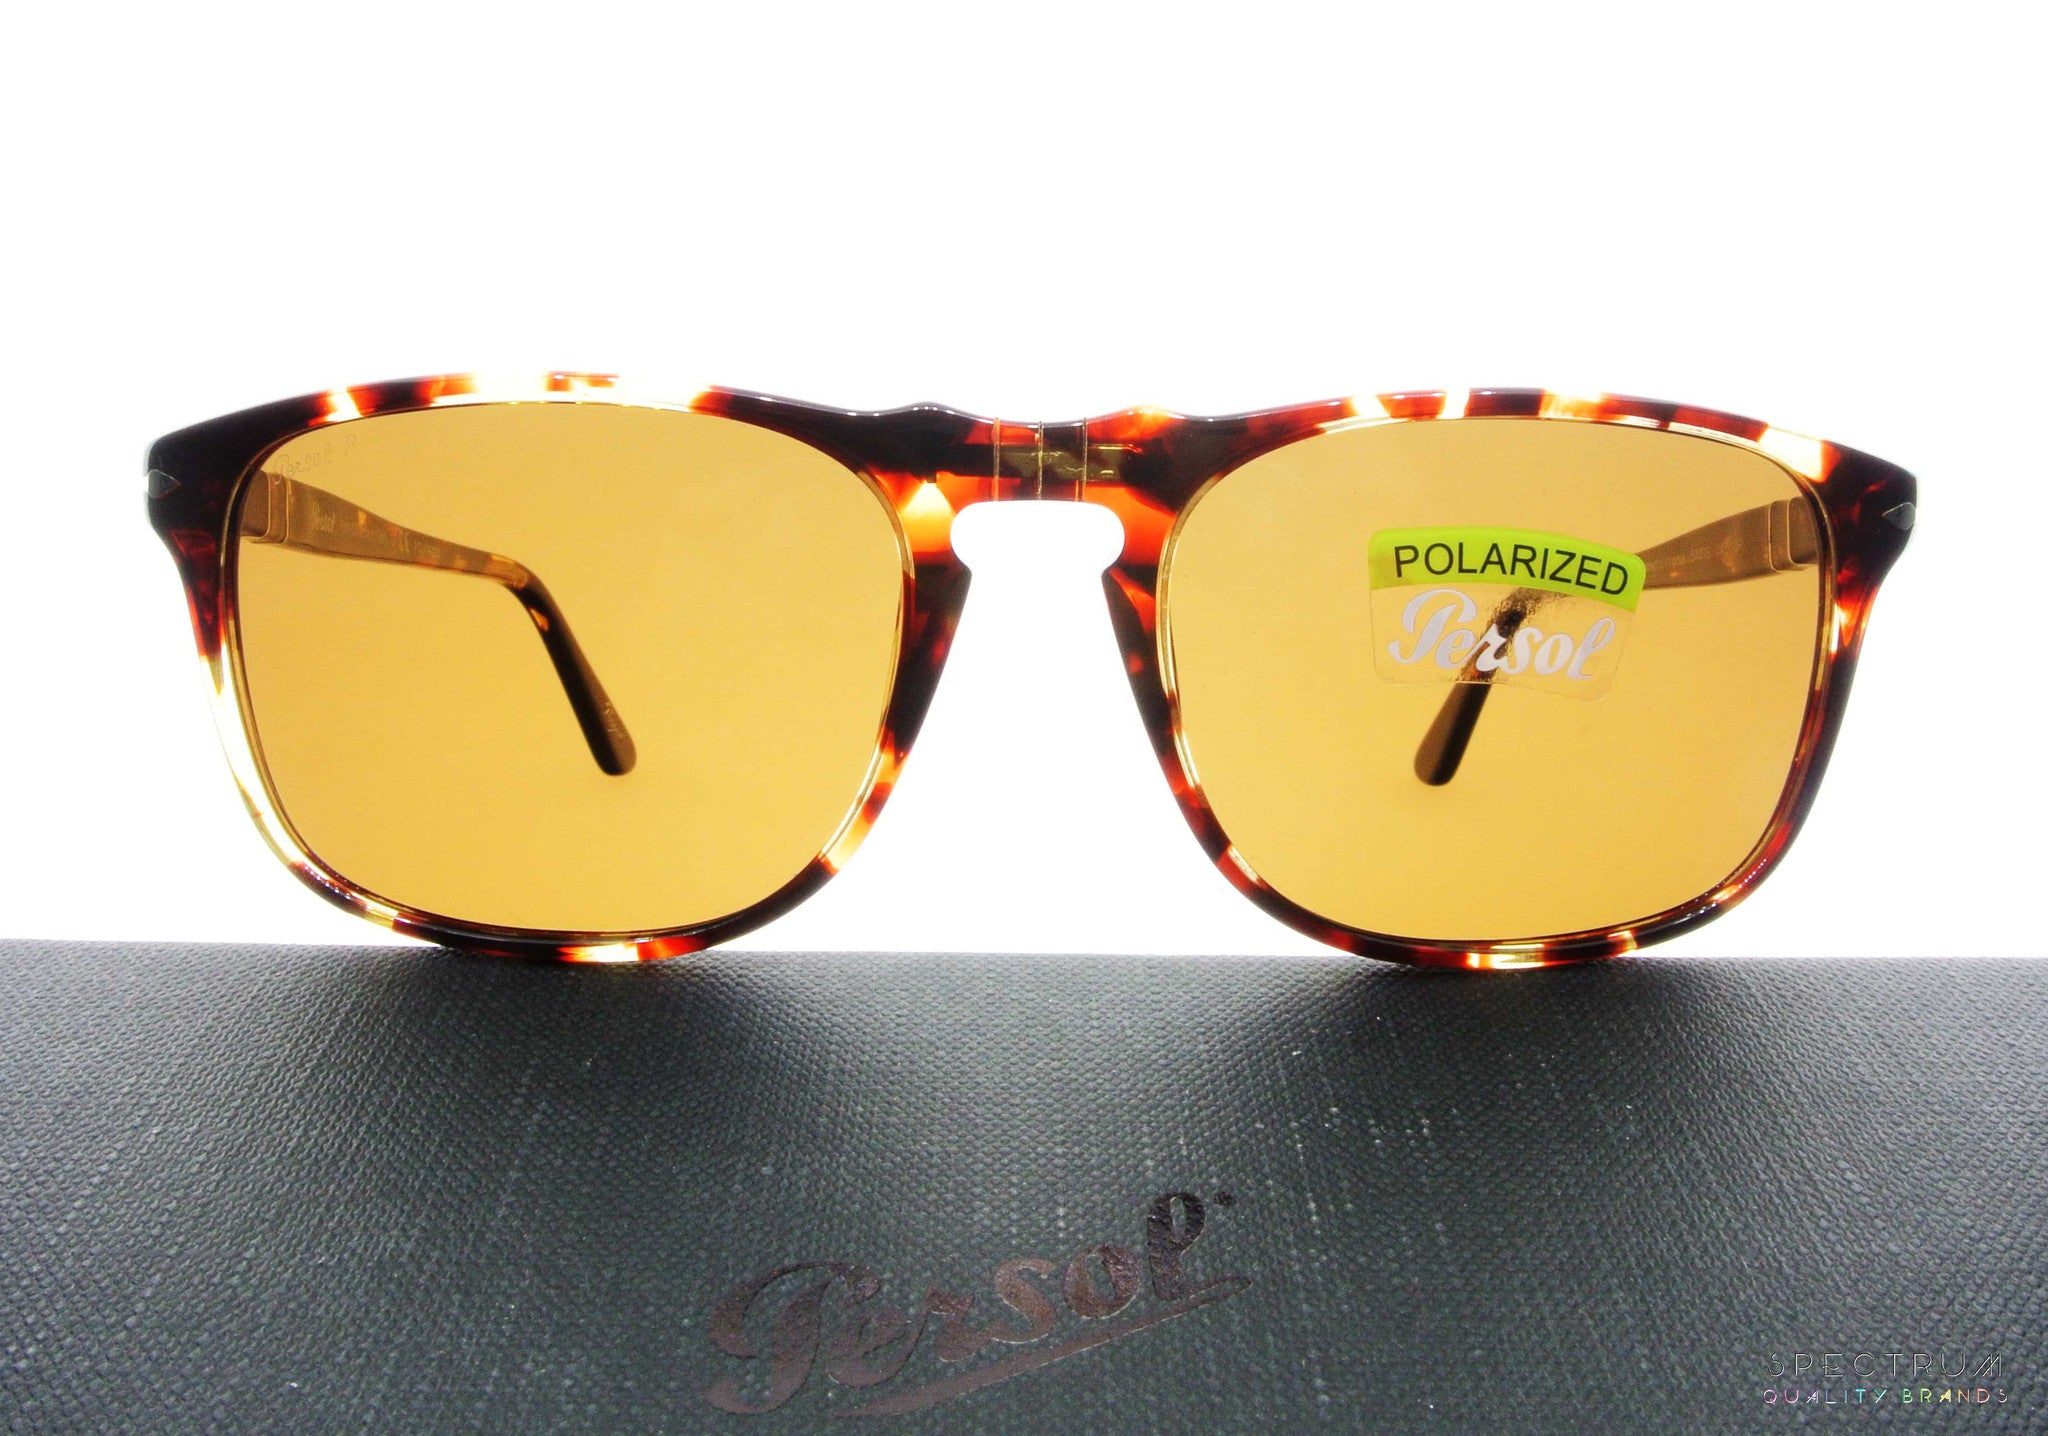 1b9c43d584b ... Persol Sunglasses 3059S 985 57 Tabacco Virginia with Polarized Brown  Lenses Size 54 ...